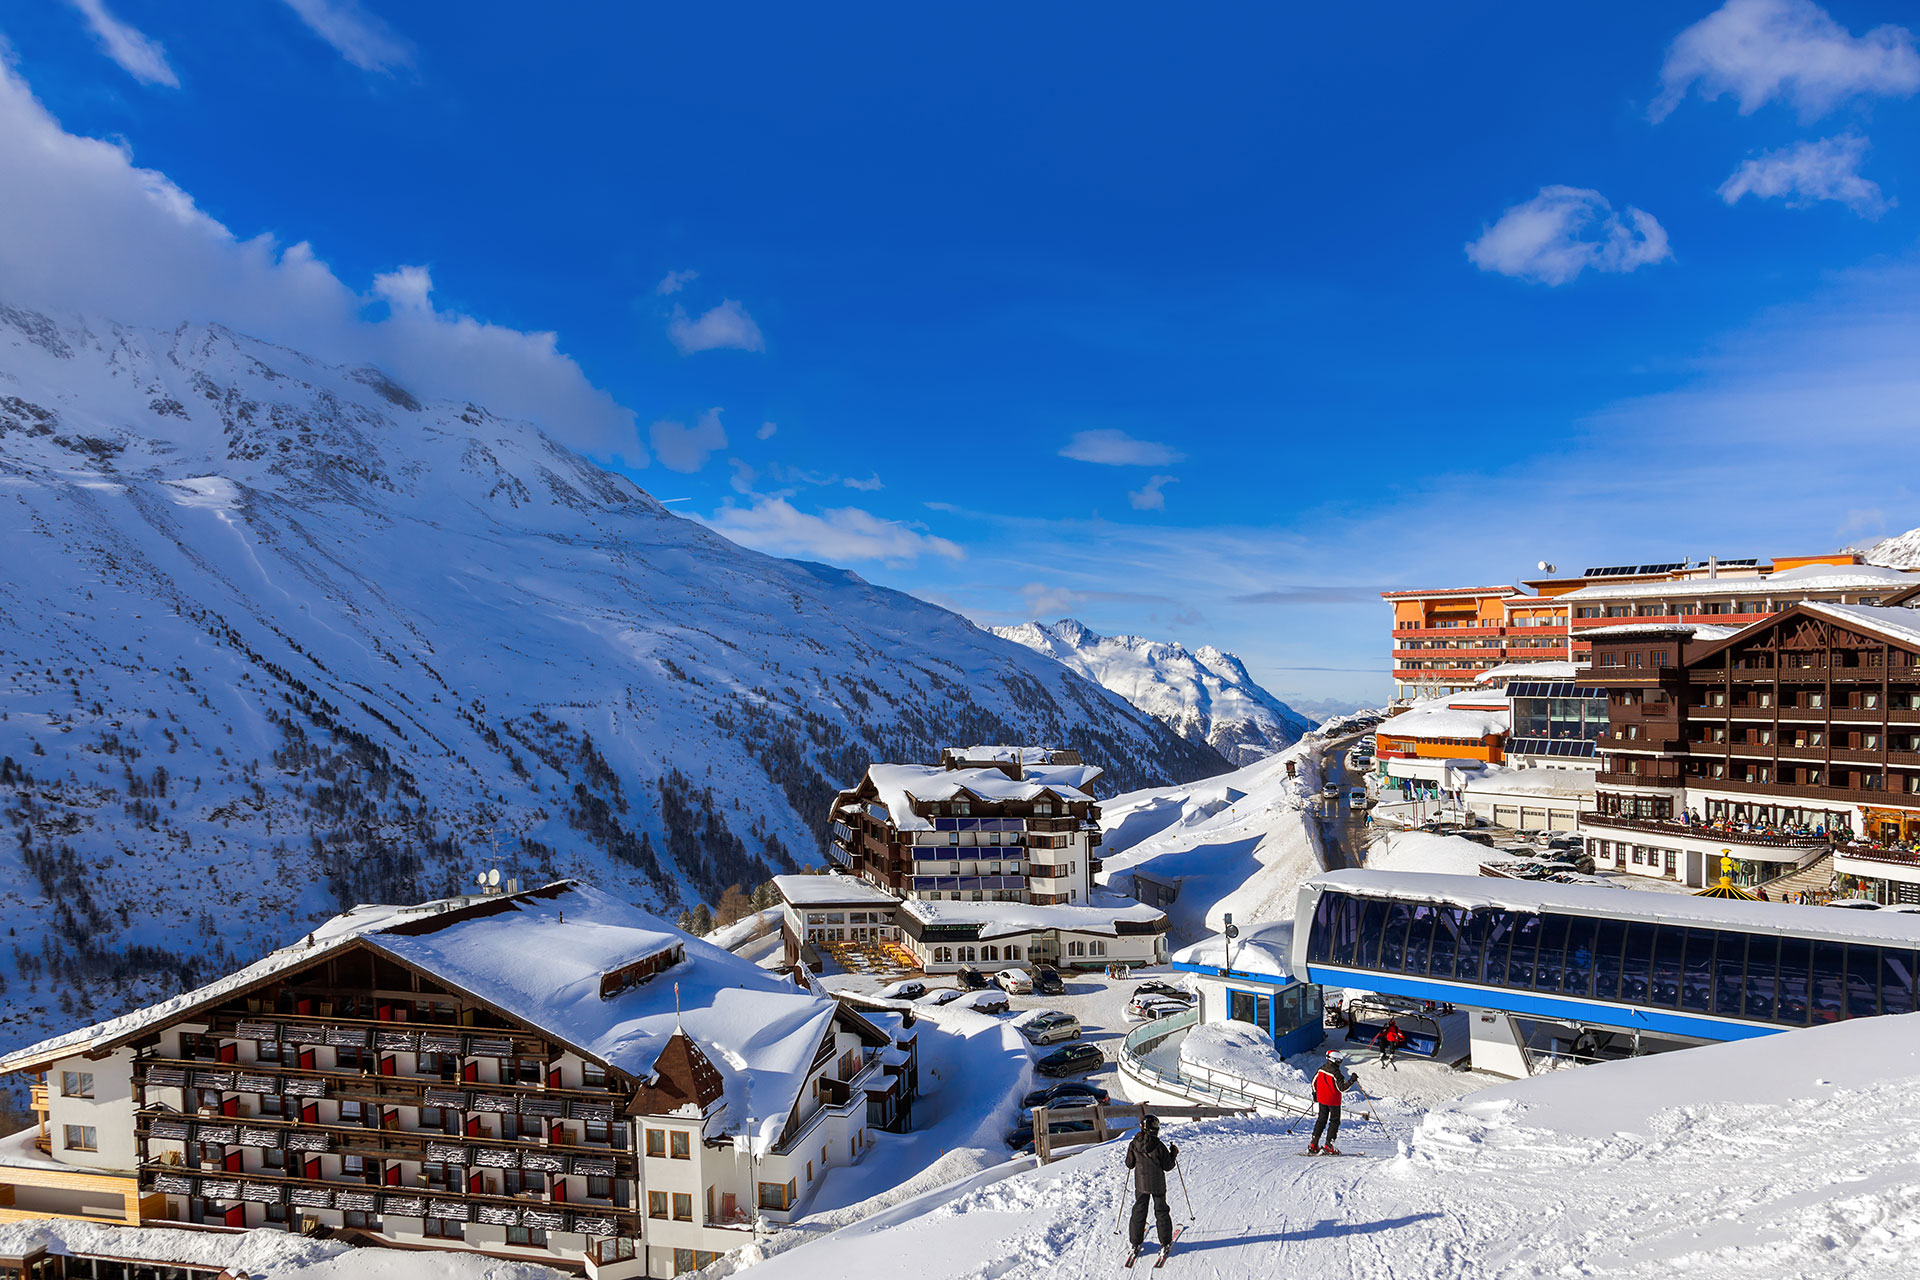 My Dream Became a Reality With Ski Instructor Courses